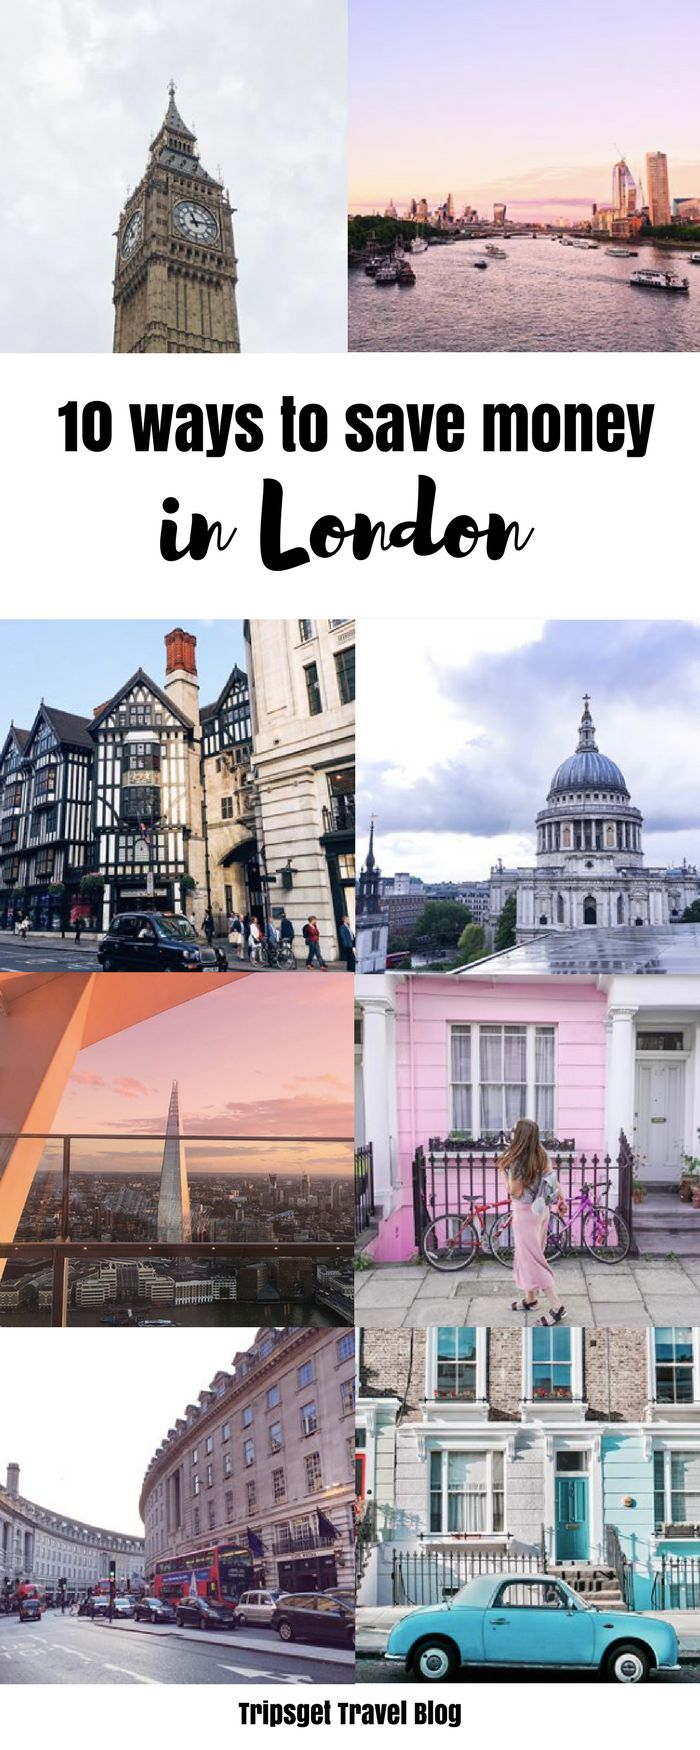 10 ways to save money in London: theatre, food, cinema, clothes, shopping, banks, going out, restaurants and more! Cheaper in London. How to survive in London #London